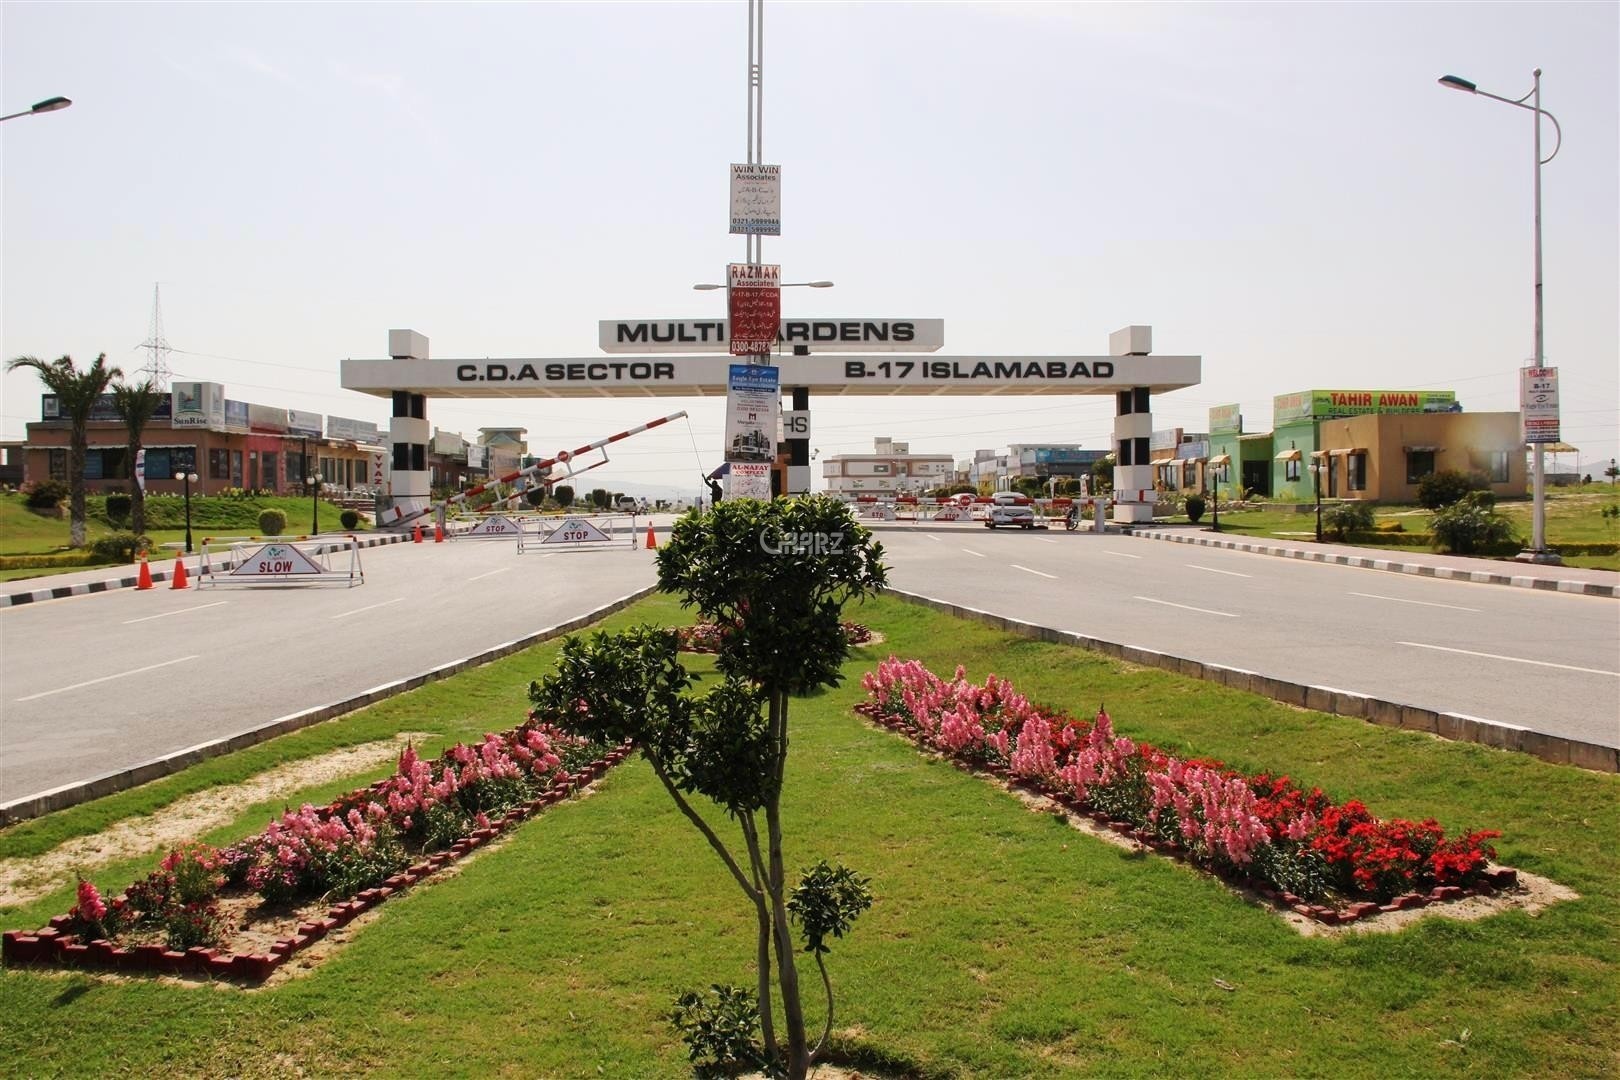 8 Marla Plot in B-17 Block-E, Islamabad is for Sale